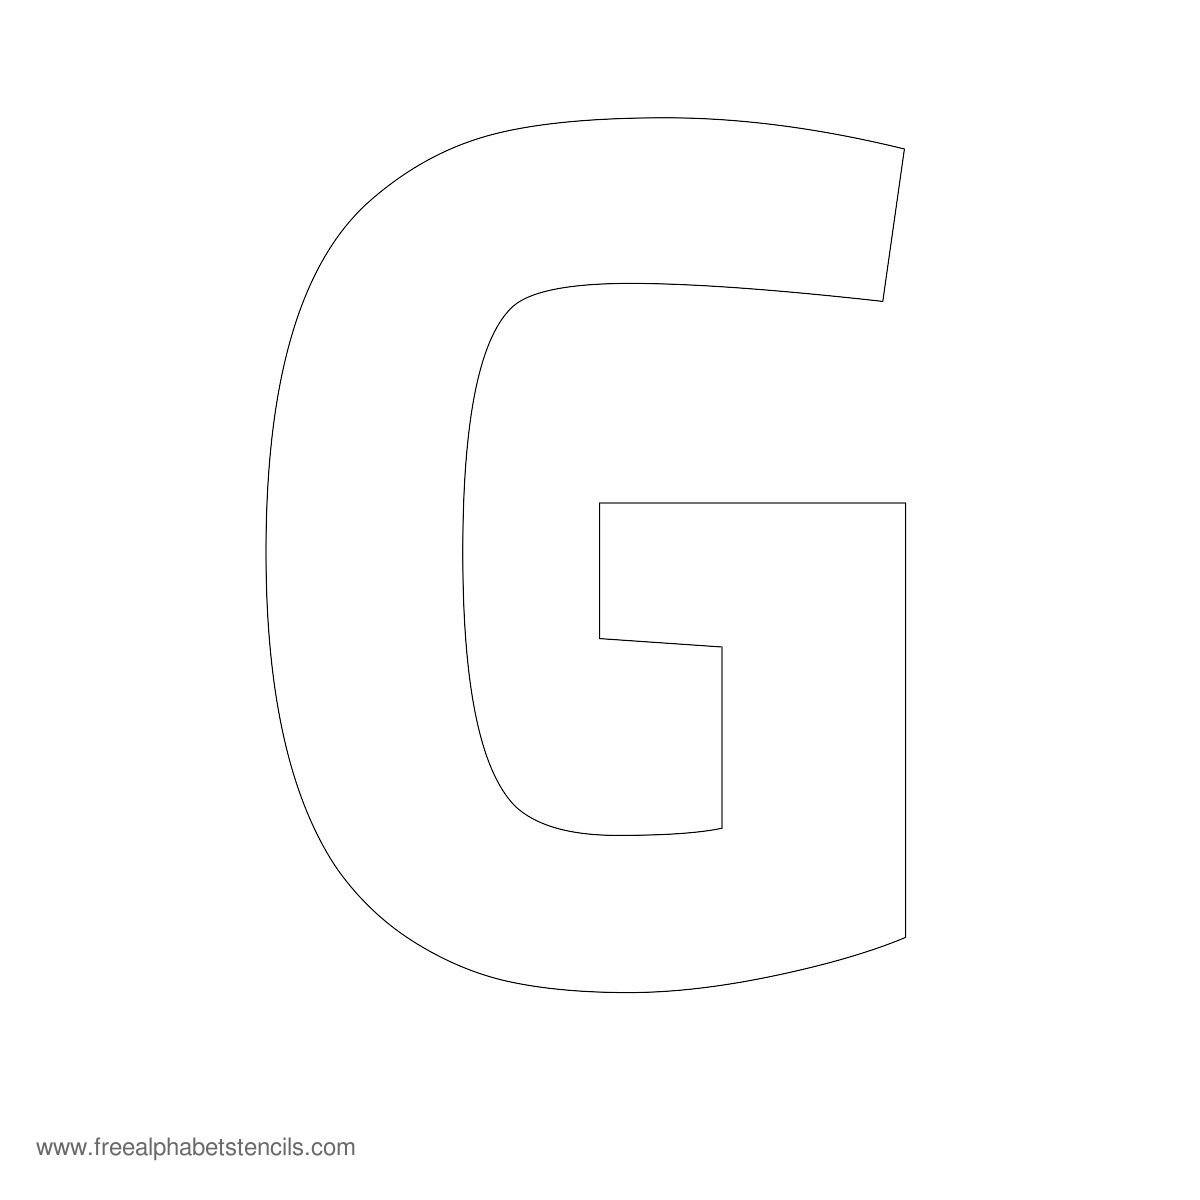 It's just a graphic of Zany Giant Printable Letters